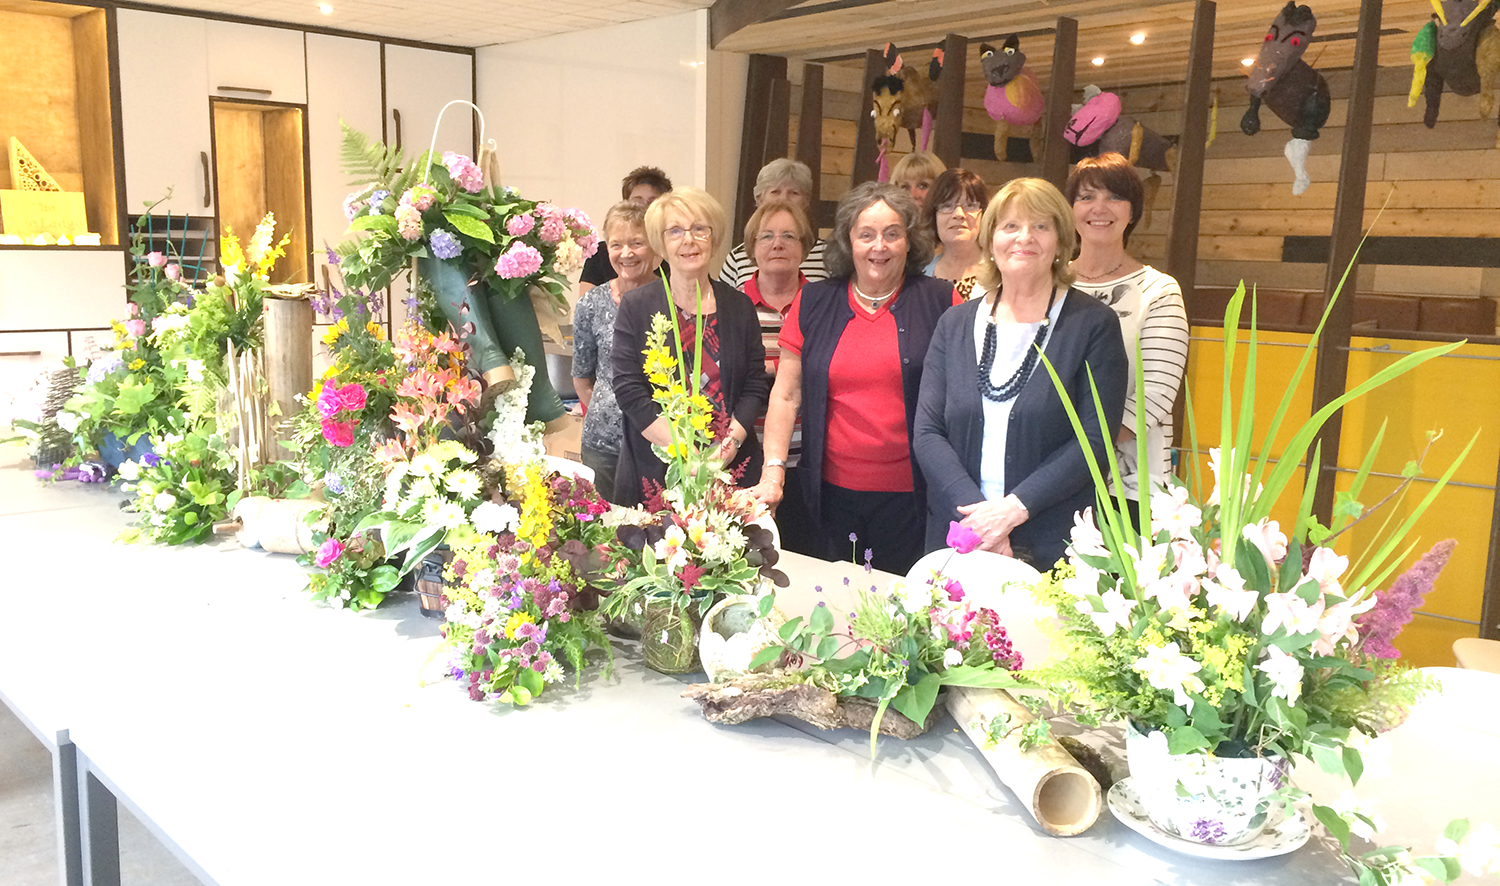 Floral Art Blossoms at Greenfield Arts